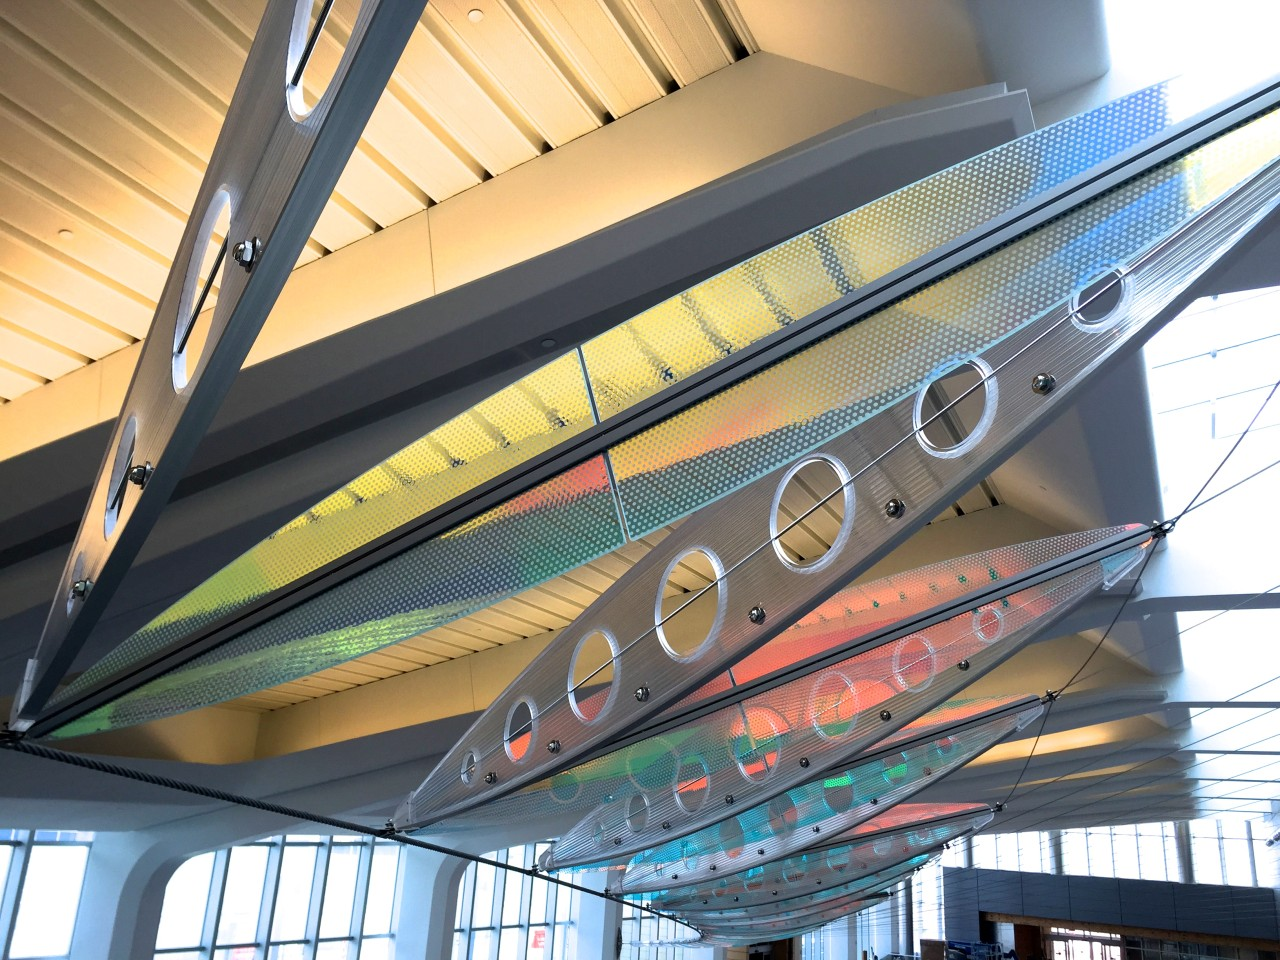 Ed Carpenter's Wichita Dwight D. Eisenhower National Airport signature sculpture Aloft delights travelers with colorful laminated safety dichroic glass above. / image 14